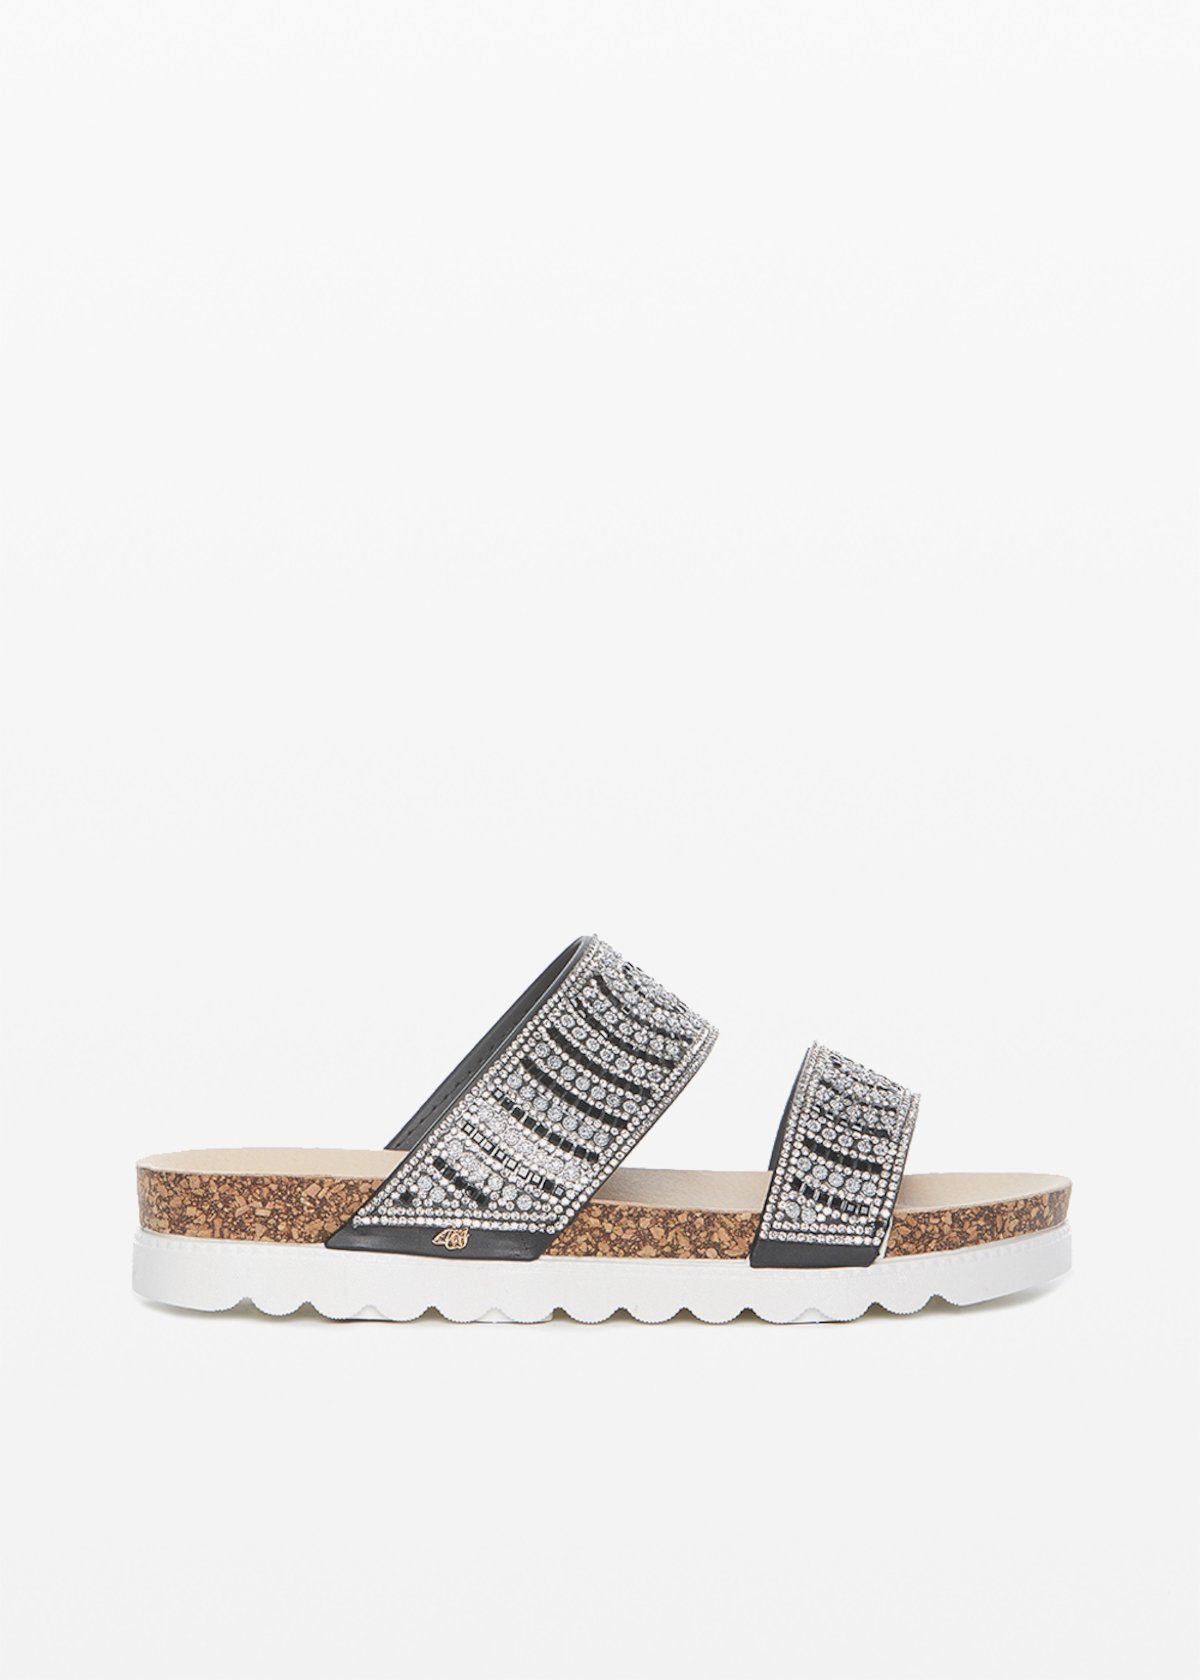 Shirl Flat Sandals with double strap and crystal-details - Black - Woman - Category image